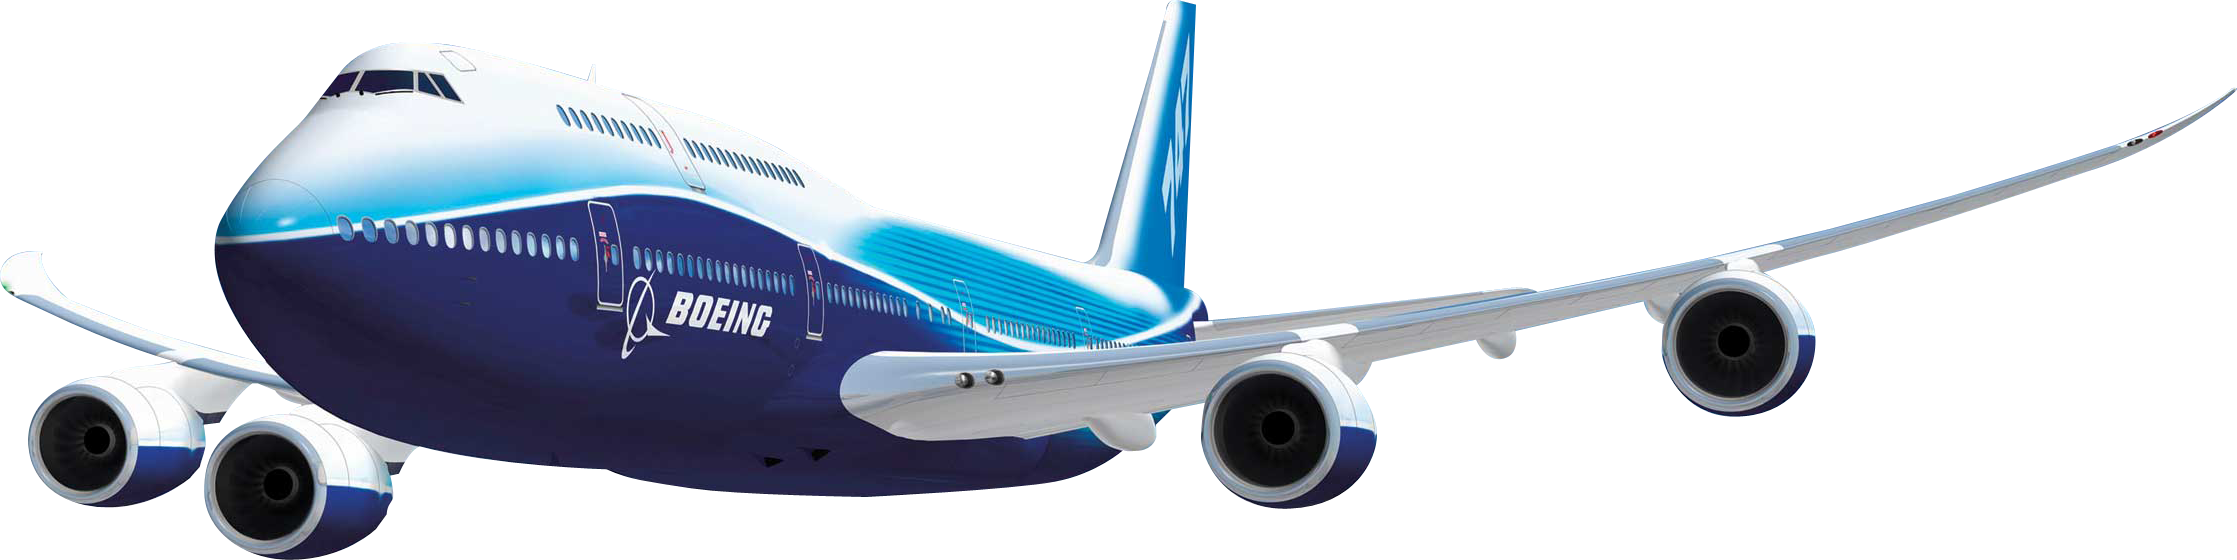 Airplane with banner png. Clipart panda free images